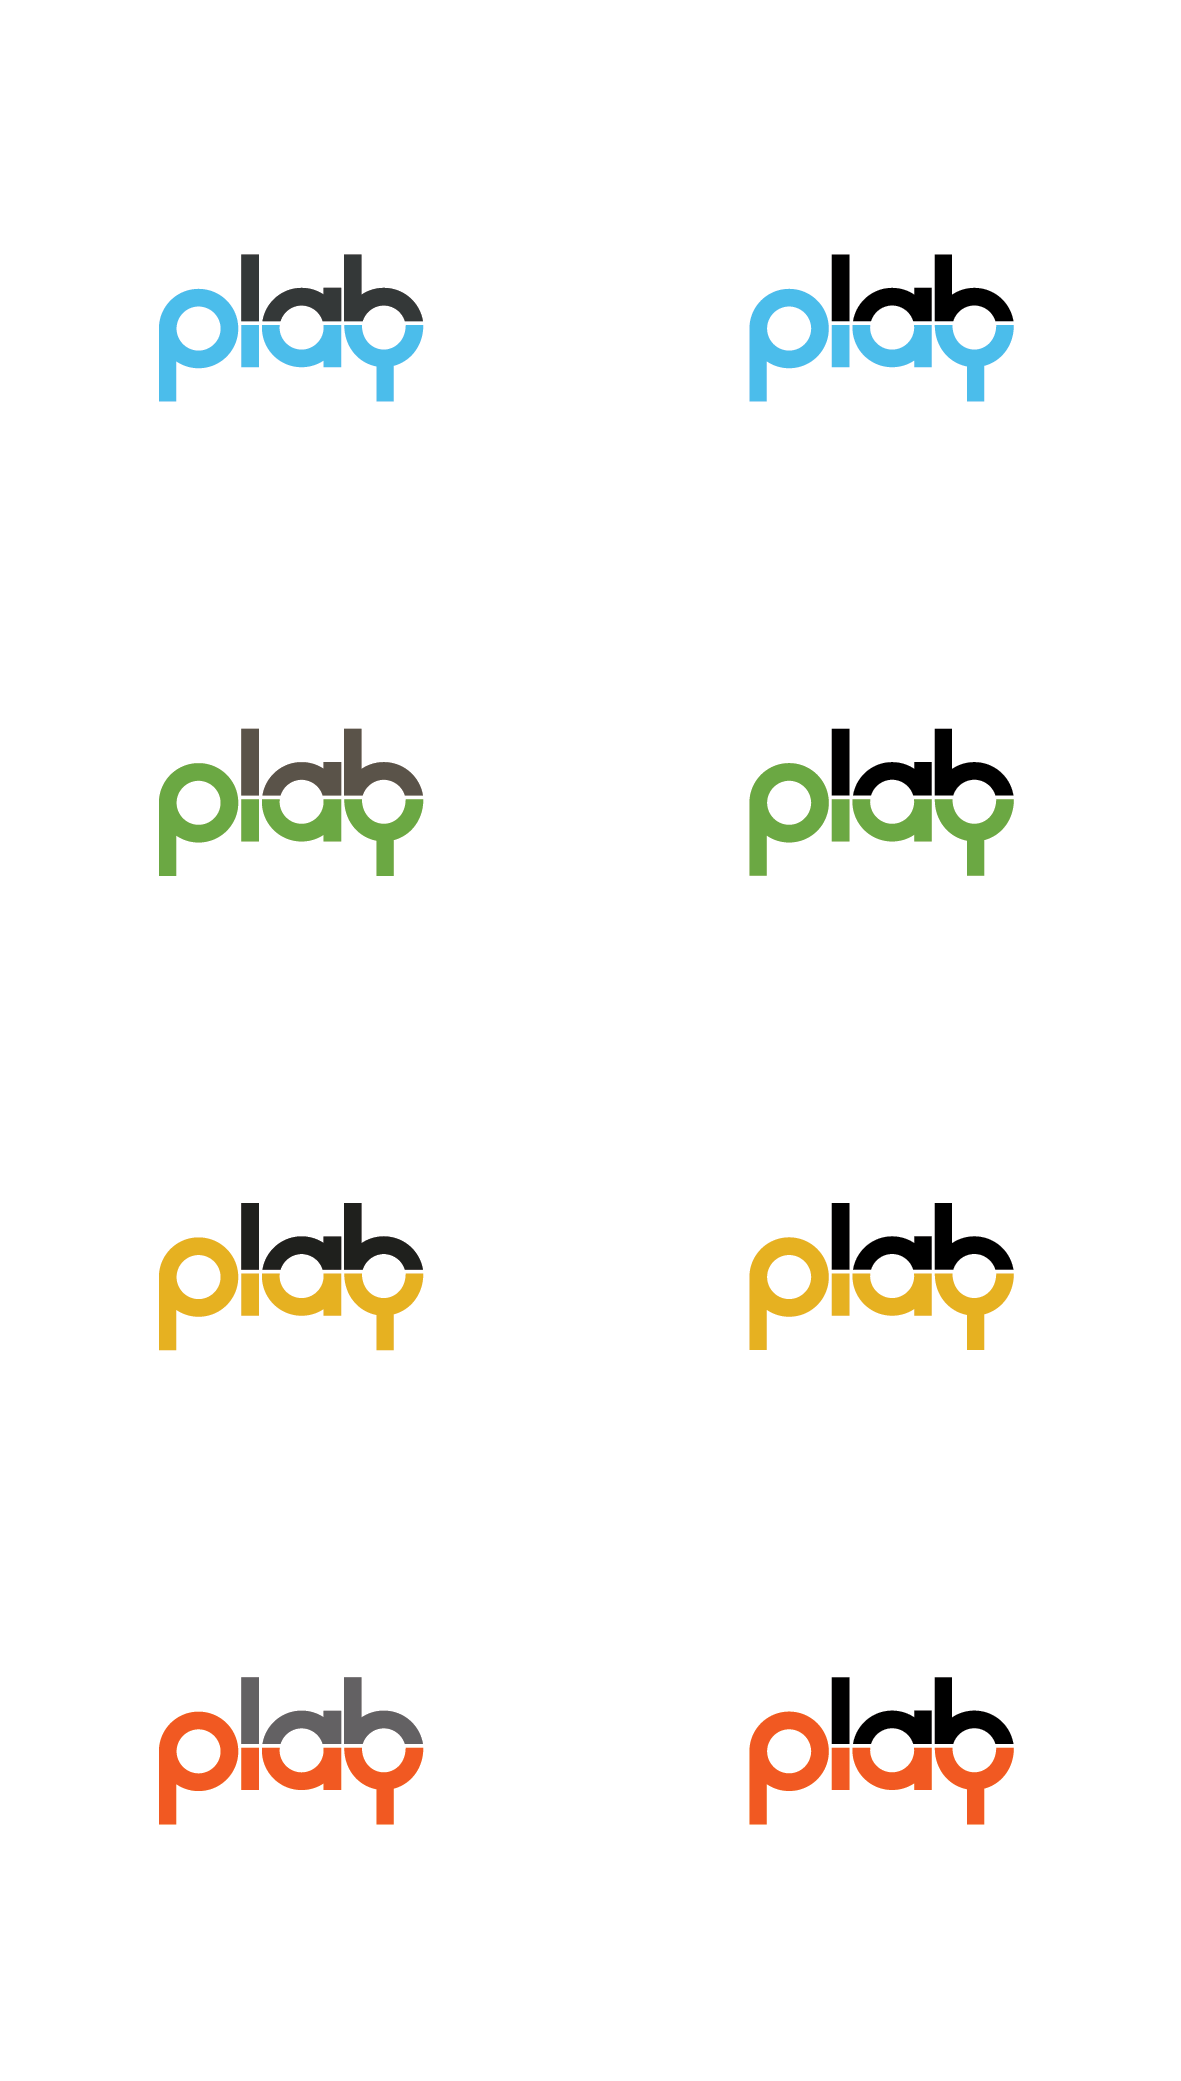 playlab needs a new logo